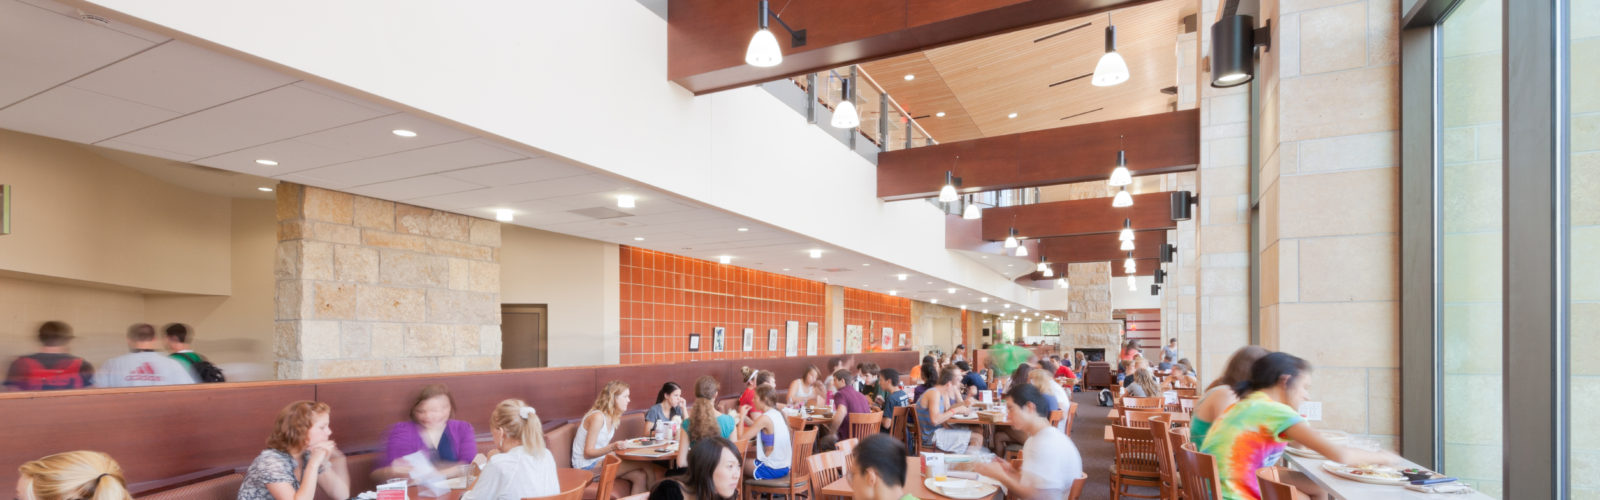 Students eat in Gordon Dining & Event Center